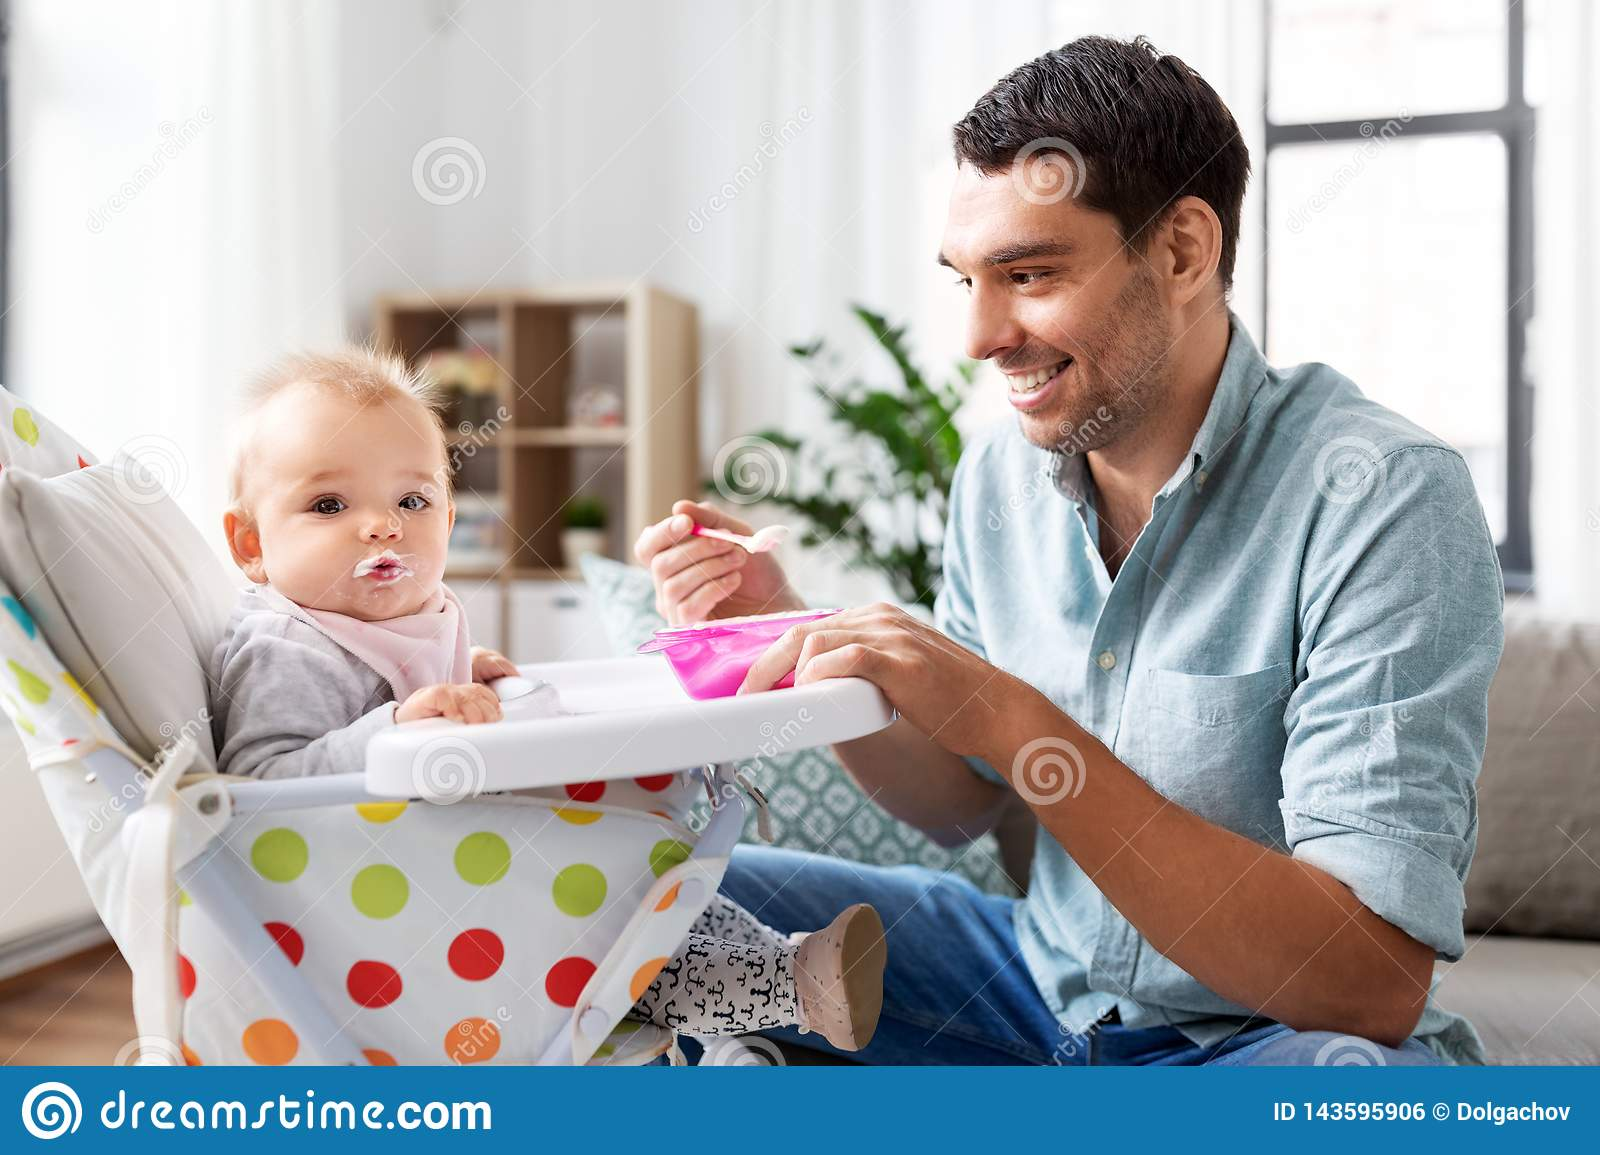 P?re alimentant le b?b? heureux dans le highchair ? la maison